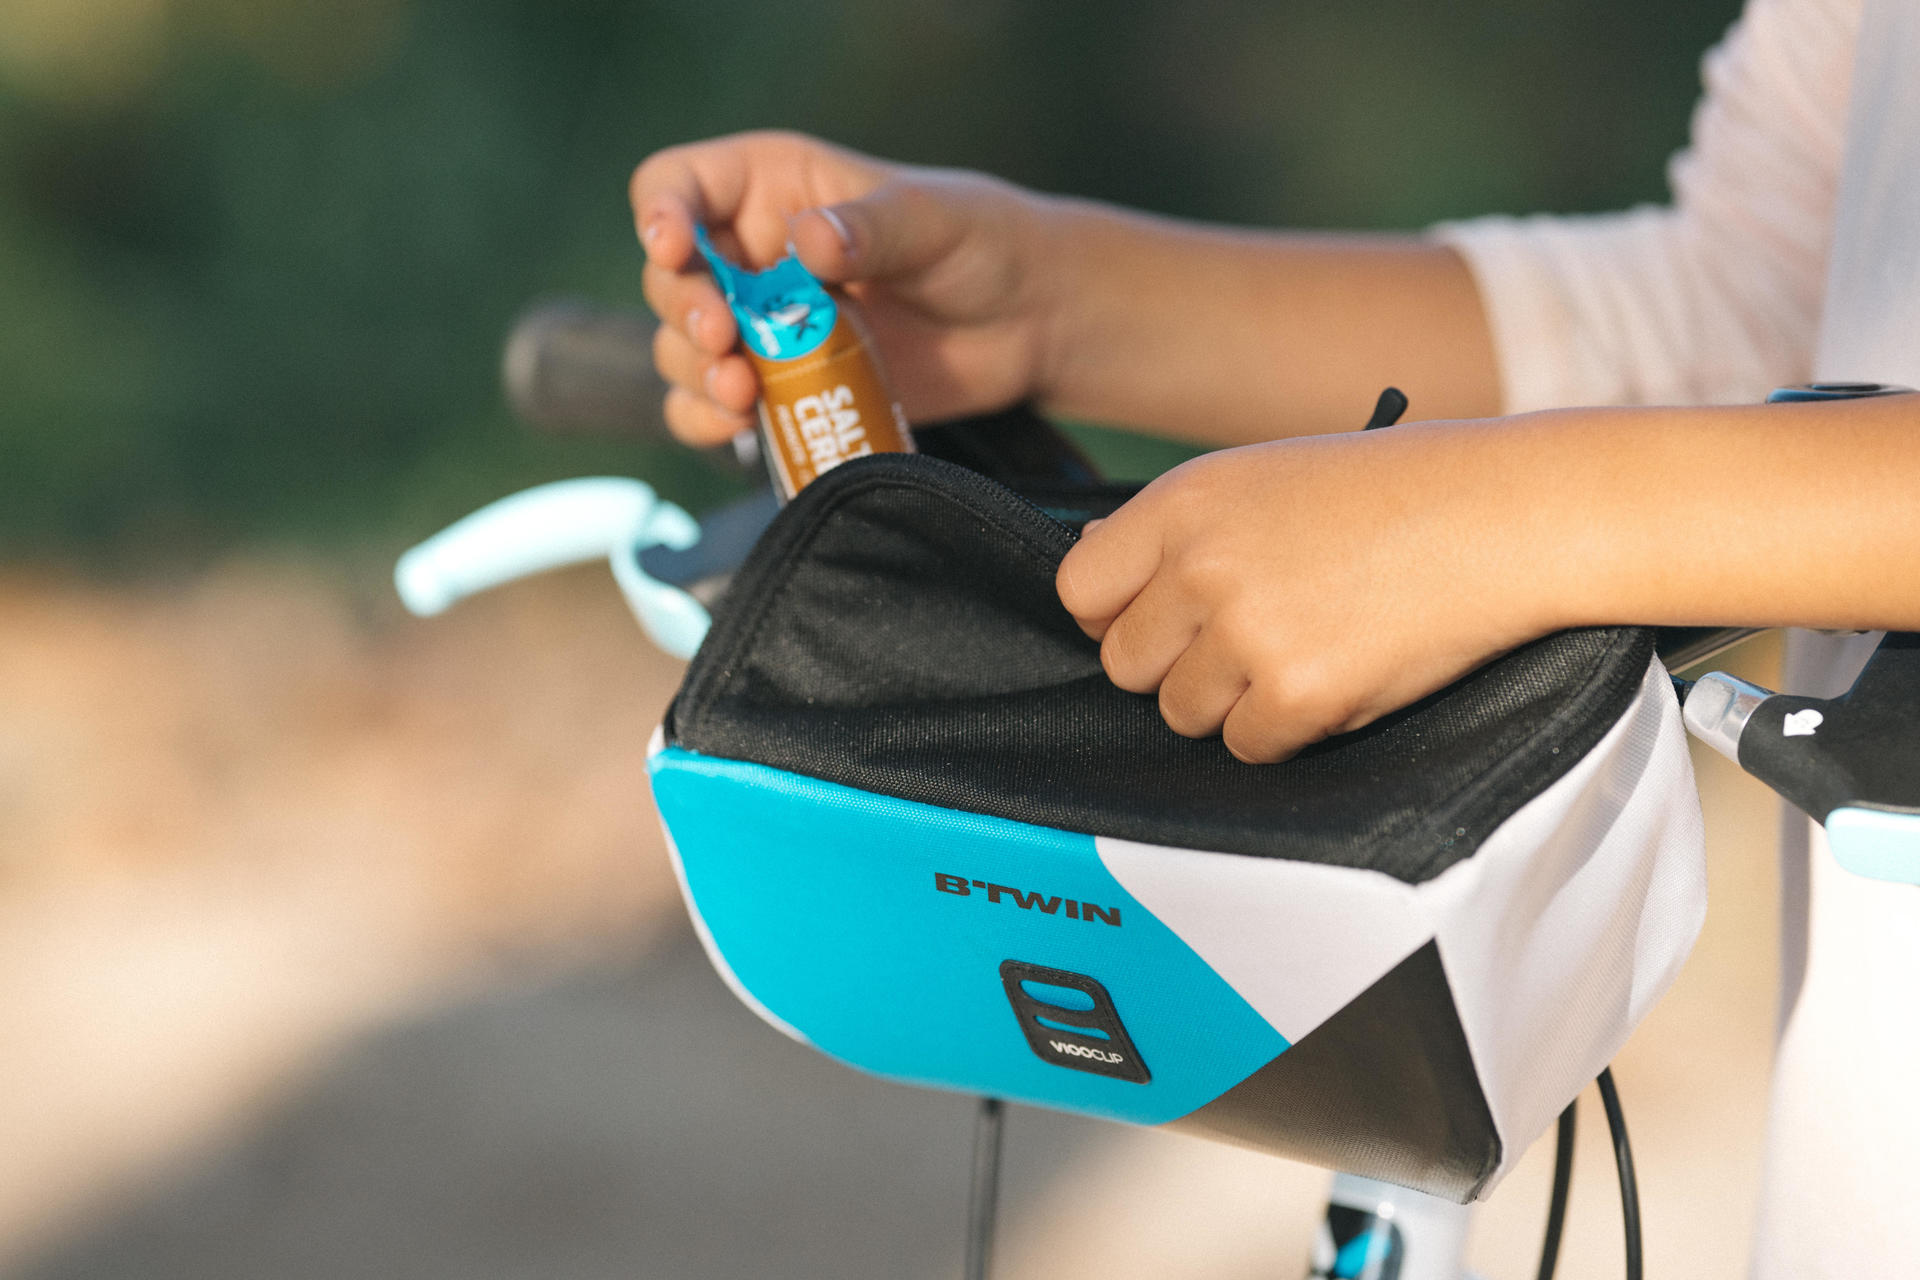 How To Choose Your Bike Pannier And Basket?